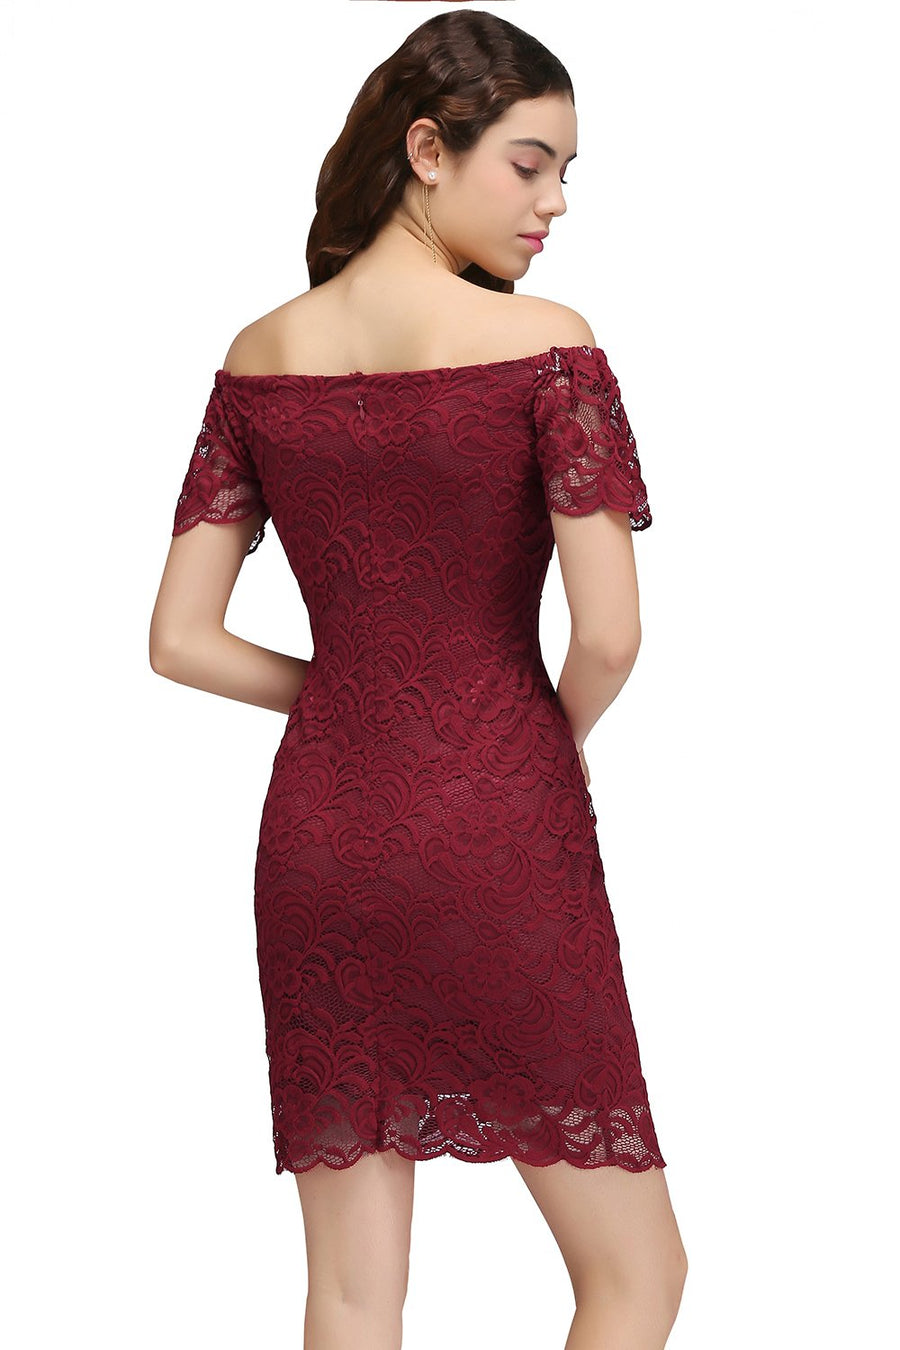 62d144b54651f9 2017 Burgundy Lace Off the Shoulder Bodycon Cocktail Dresses Sexy Short  Prom Dresses Party Dress Gowns